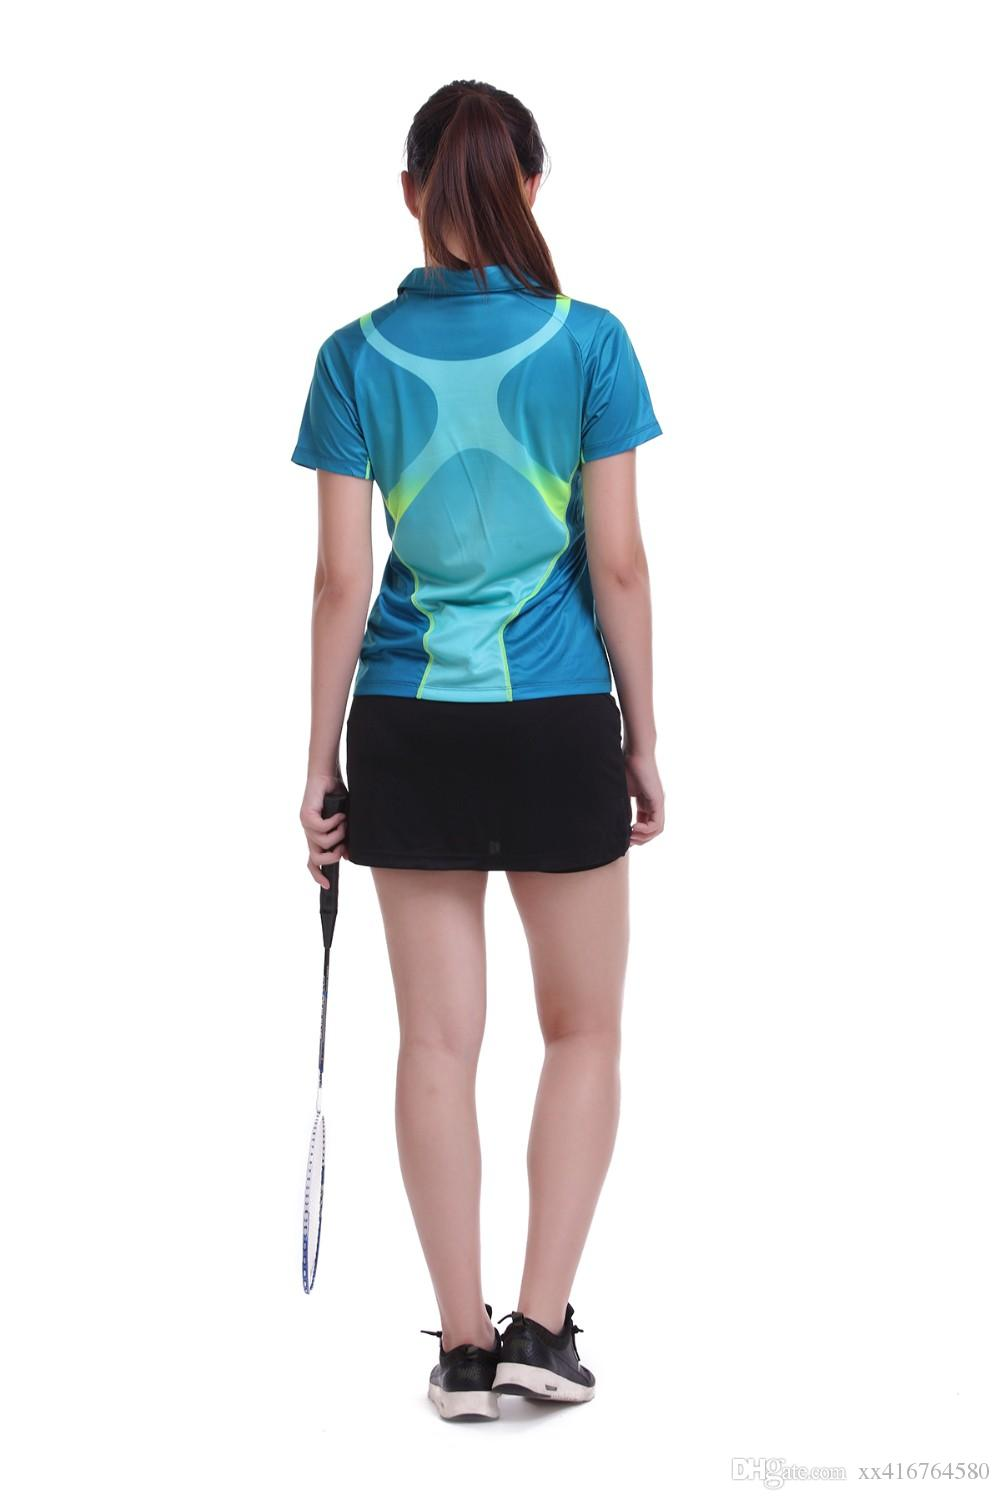 Sportswear sweat Quick Dry breathable badminton shirt ,Women/Men table tennis Ping pong clothes team game training POLO T Shirts